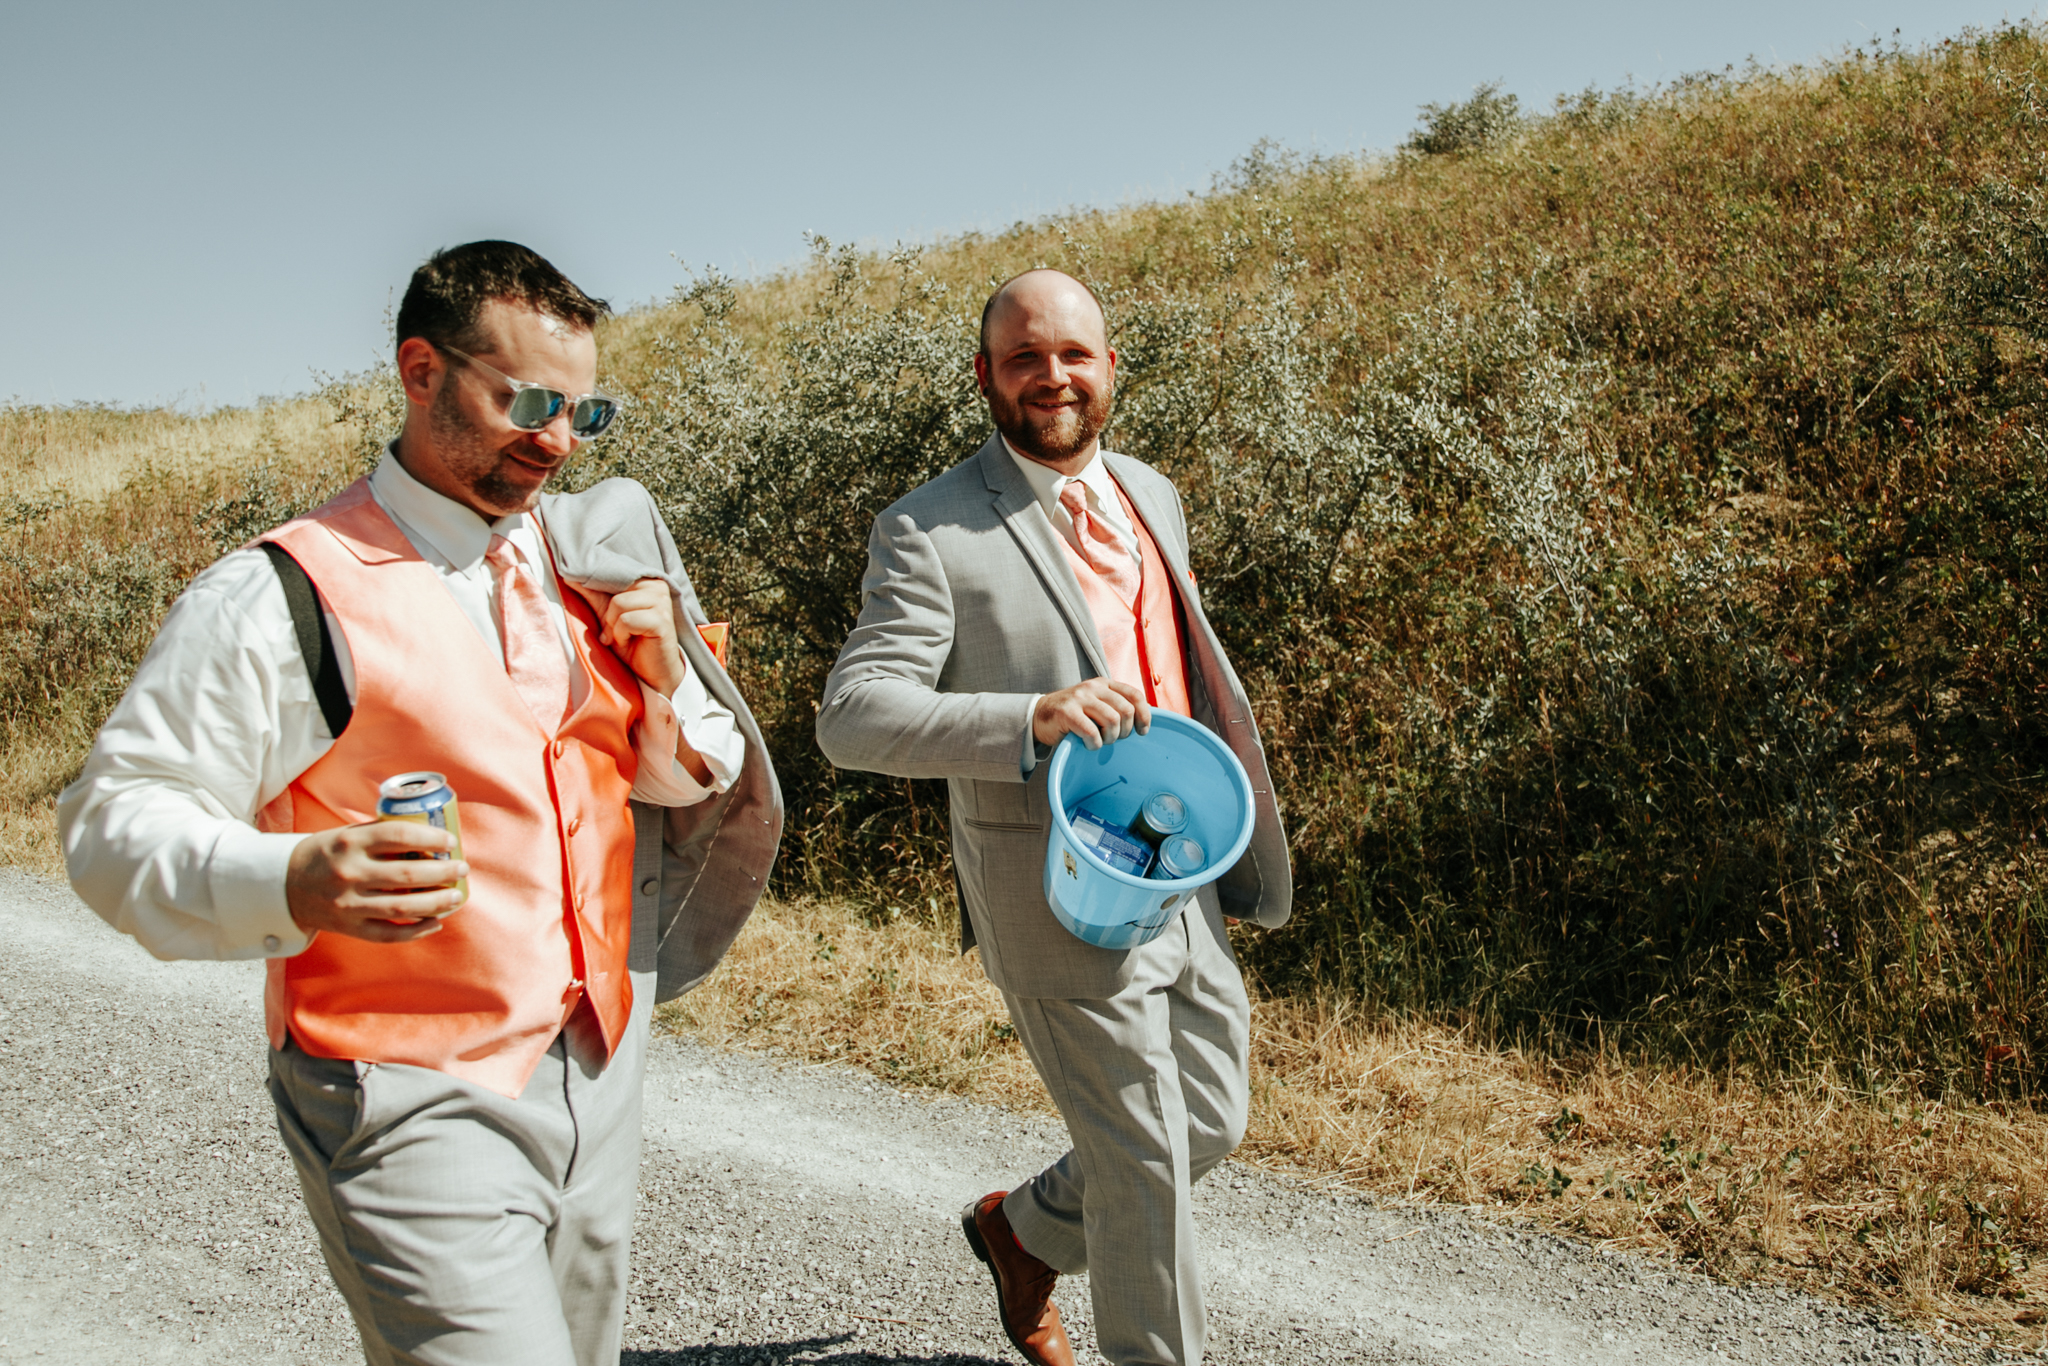 lethbridge-wedding-photography-love-and-be-loved-photographer-sean-sharla-henderson-lake-wedding-image-picture-photo-92.jpg